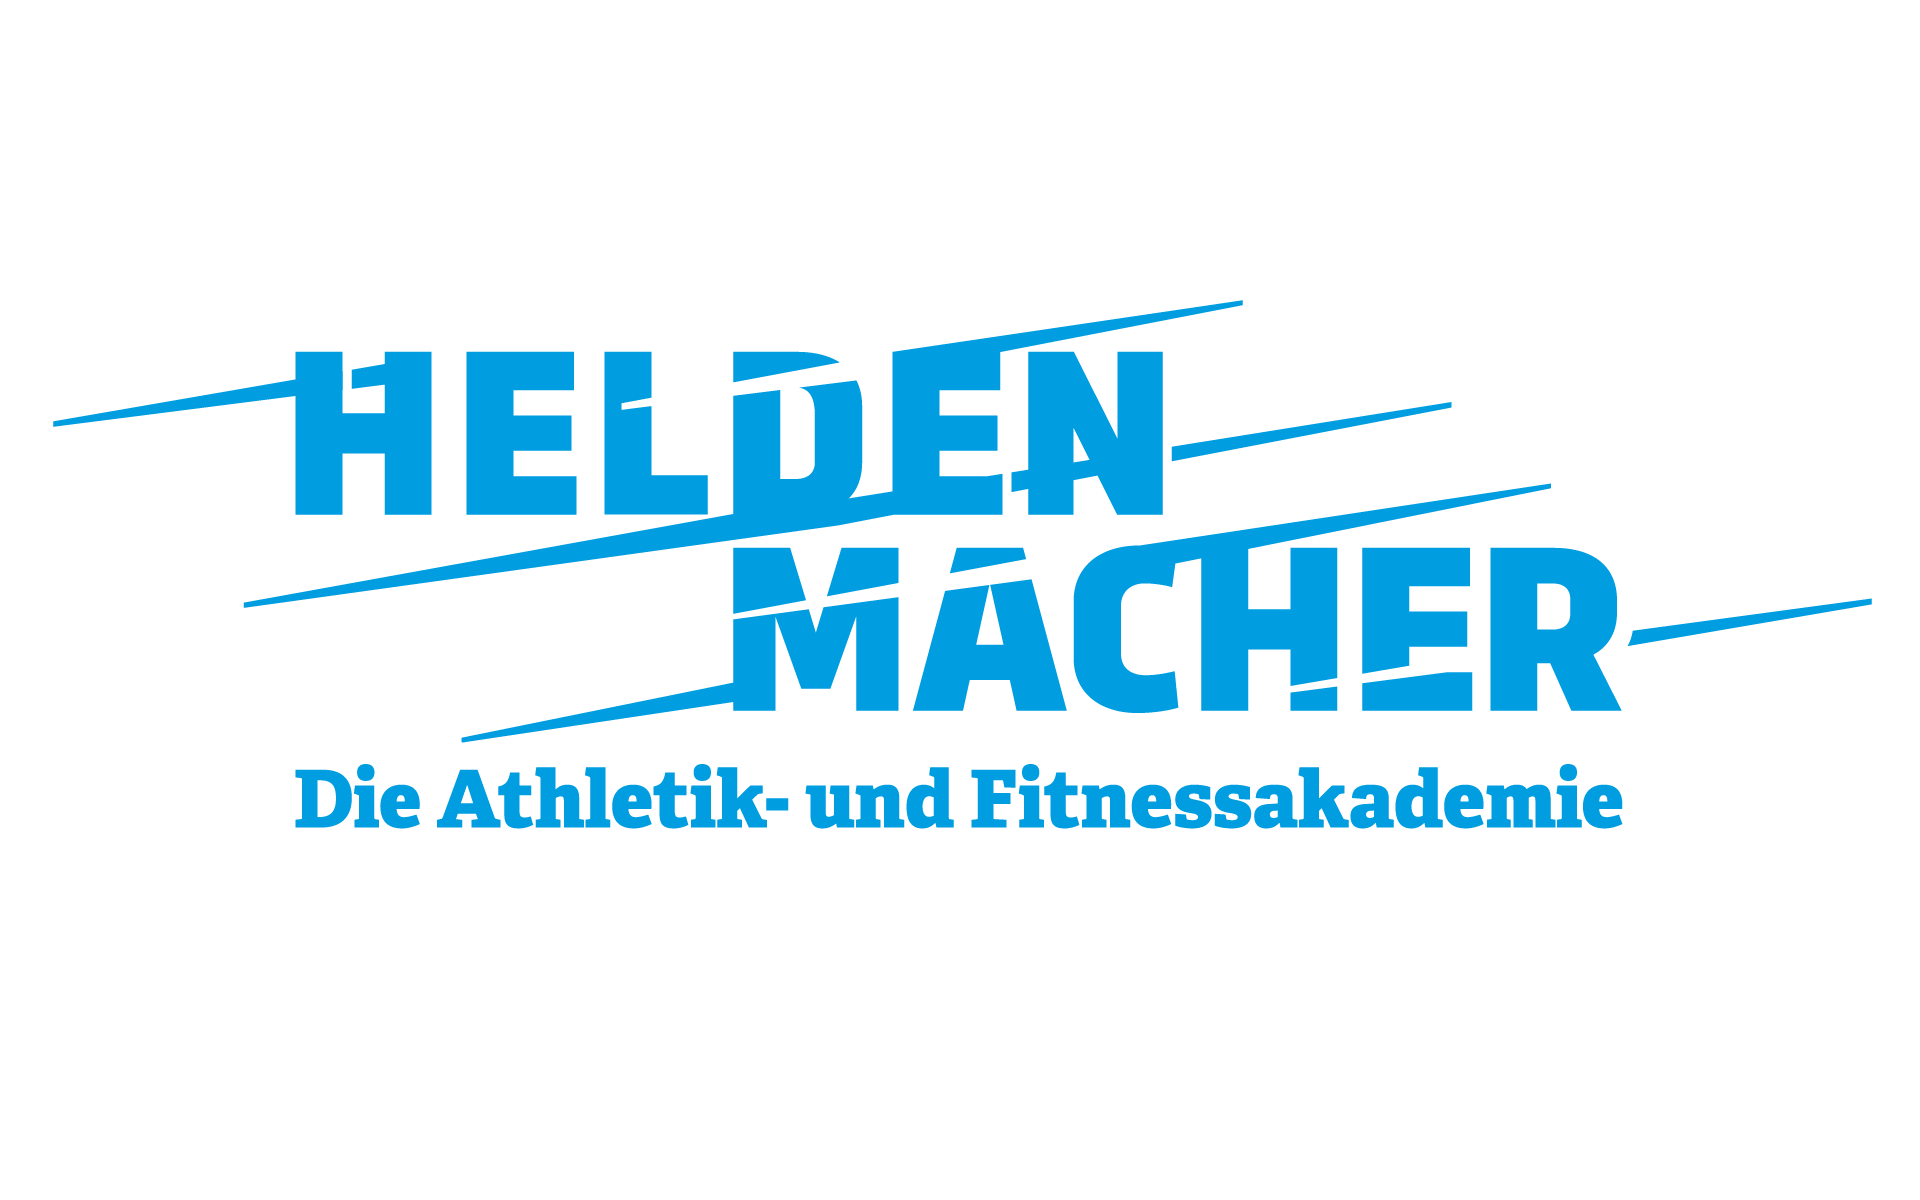 Heldenmacher Corporate Design & Website, Logotype – auf weißem Grund